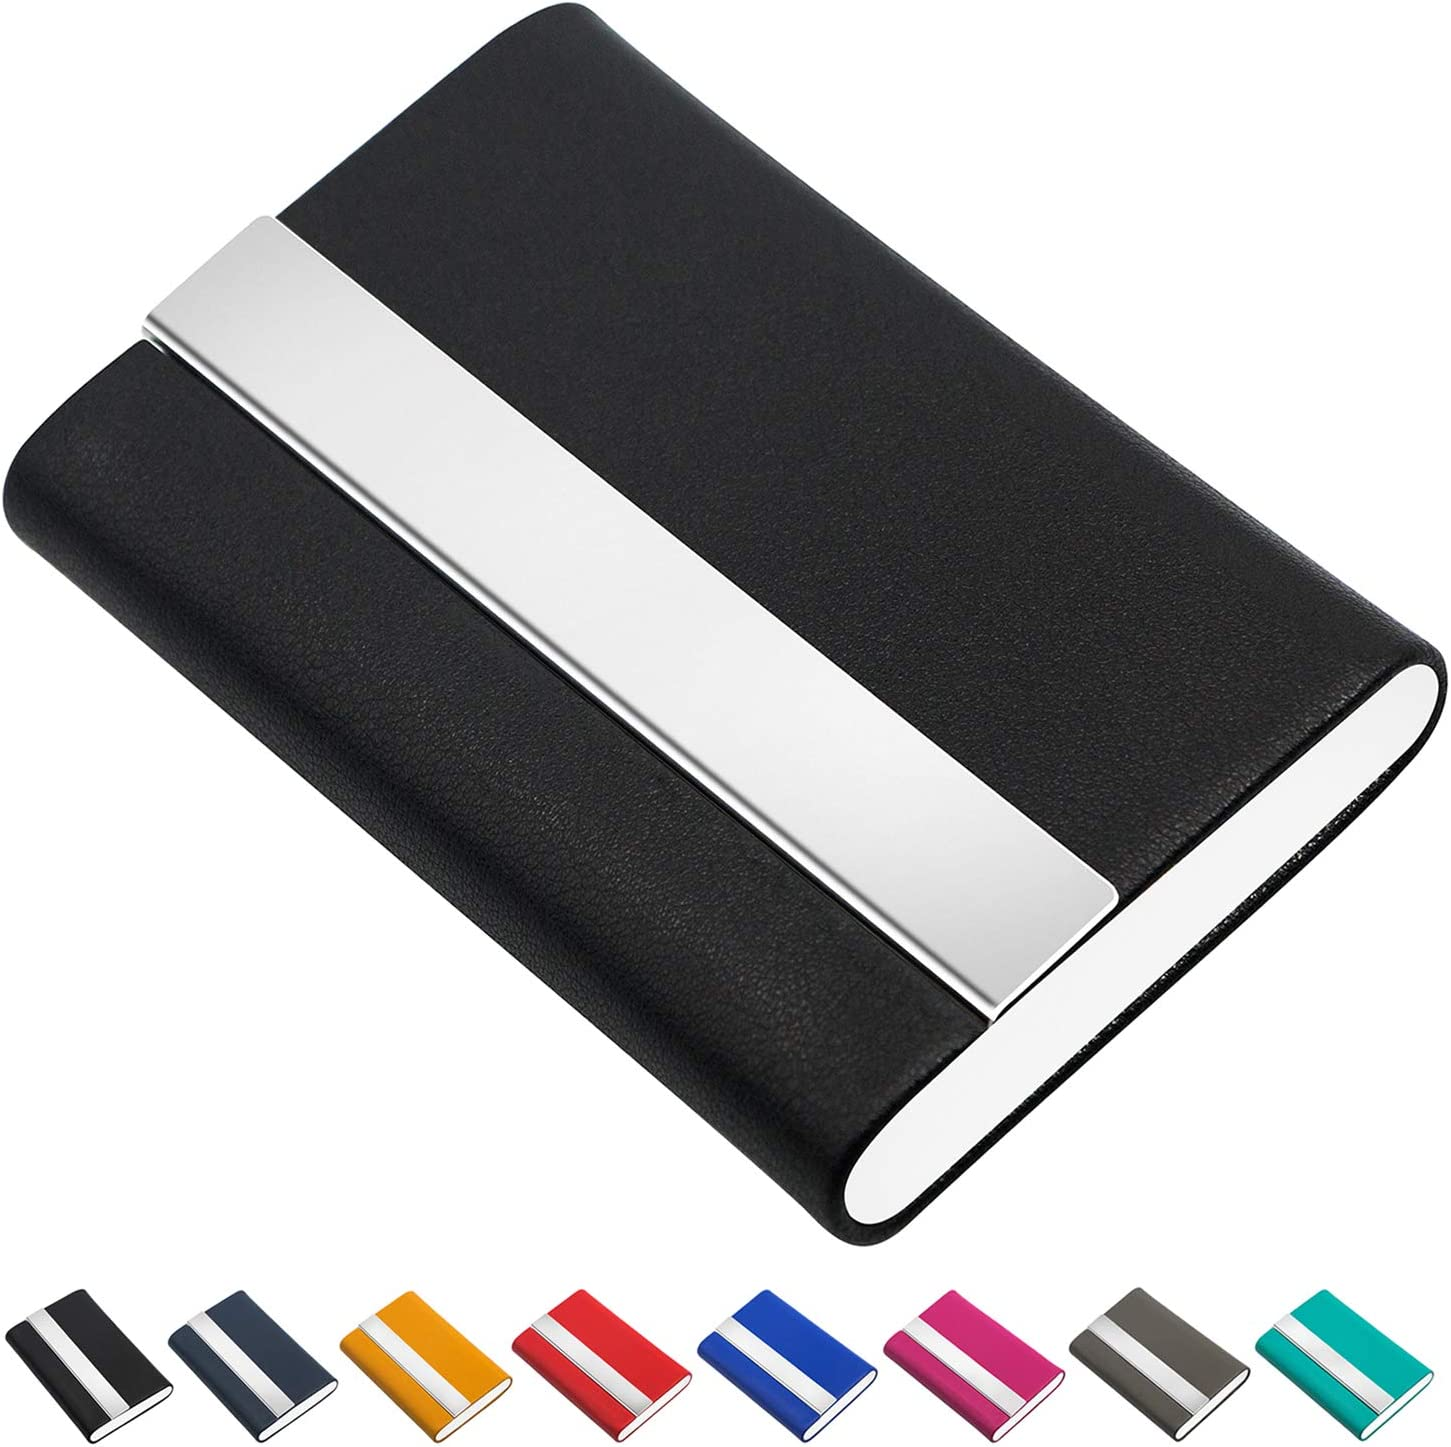 Padike Business Card Holder, Business Card Case Luxury PU Leather &  Stainless Steel Multi Card Case,Business Card Holder Wallet Credit Card ID